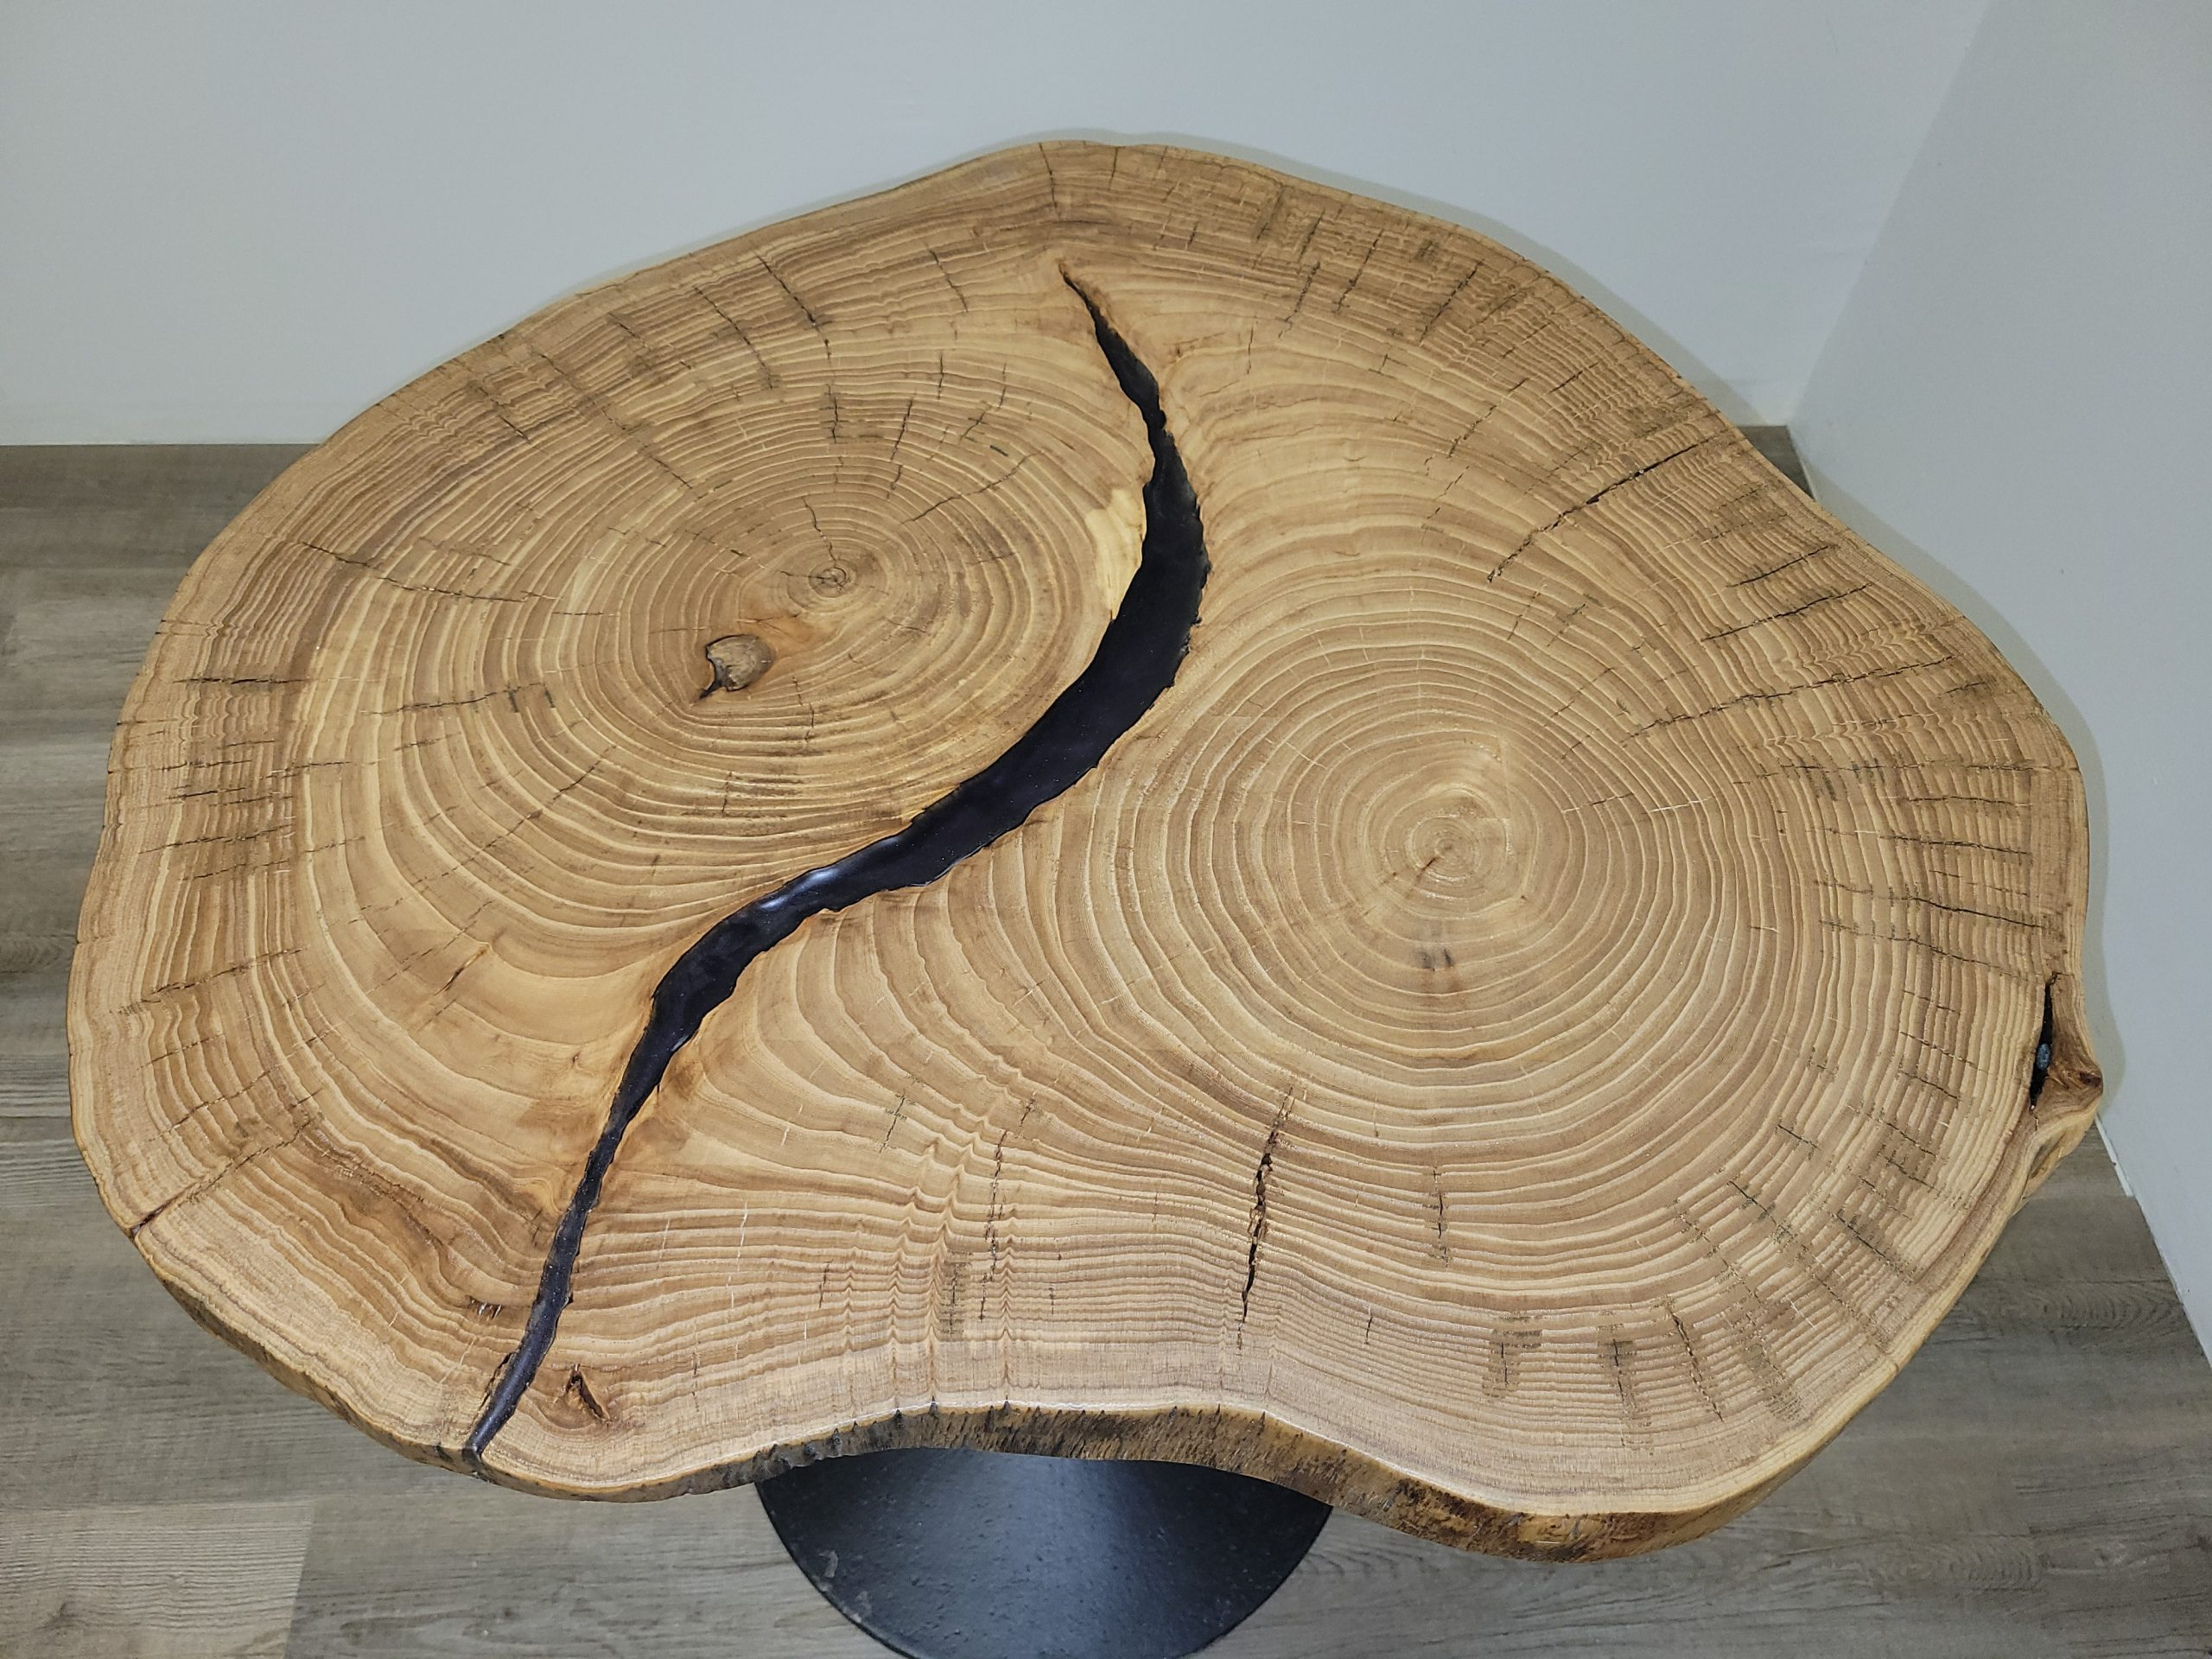 https://competitivewoodcraft.com/wp-content/uploads/2021/03/Live-Edge-Coffee-Table-1-scaled.jpg